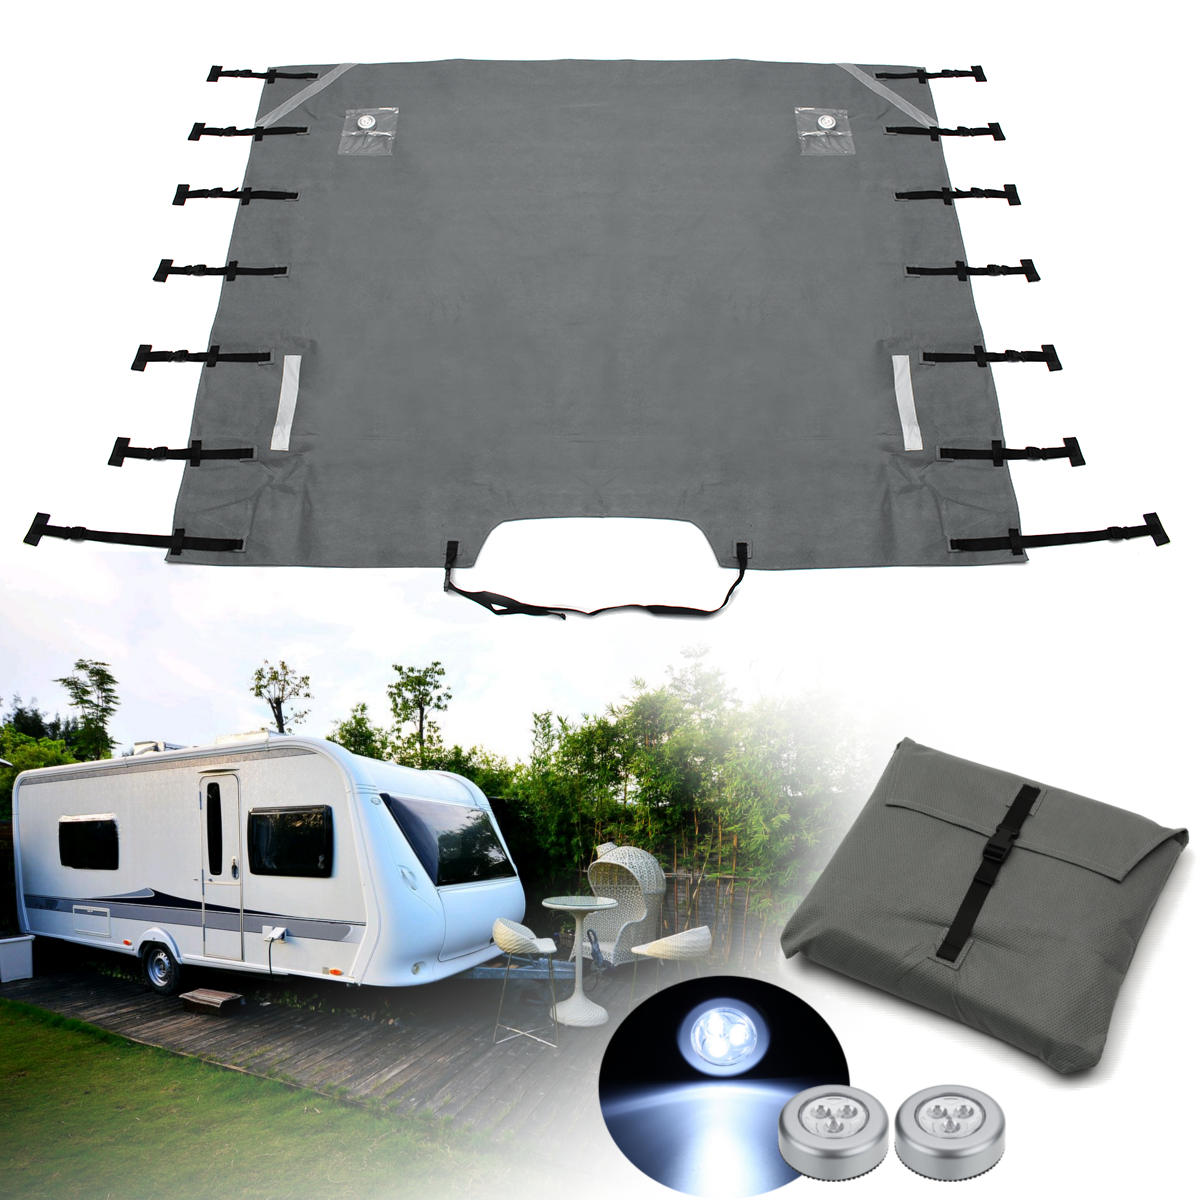 Grey Caravan Front Towing Cover Chip Protection Universal Size Free LED Lights caravan caravan in the land of grey and pink